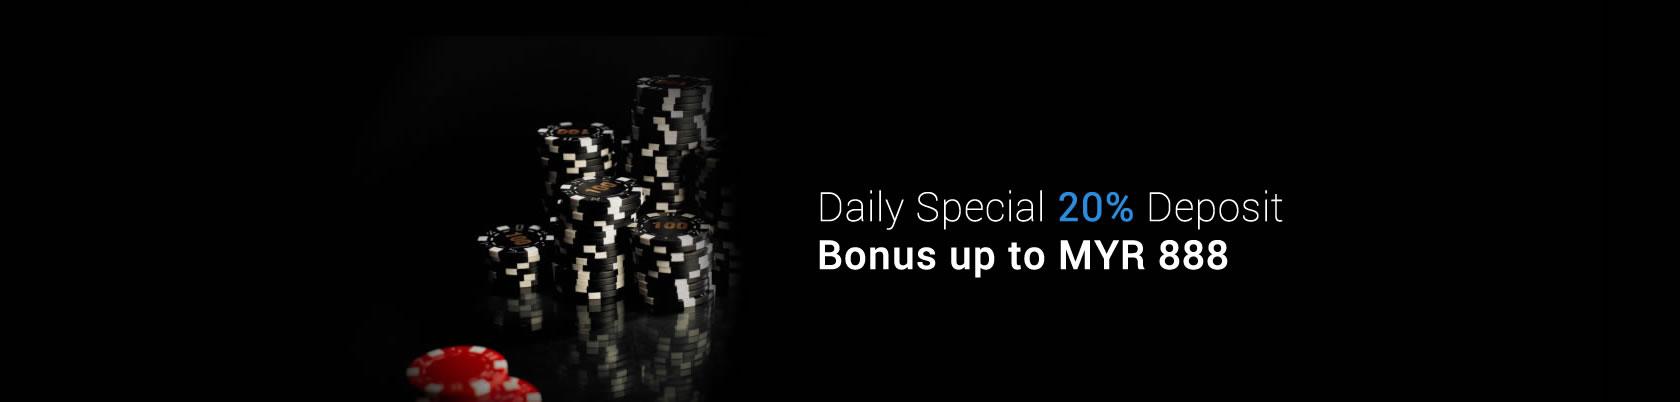 1Bet2u Daily Special 20% Deposit Bonus up to MYR 888